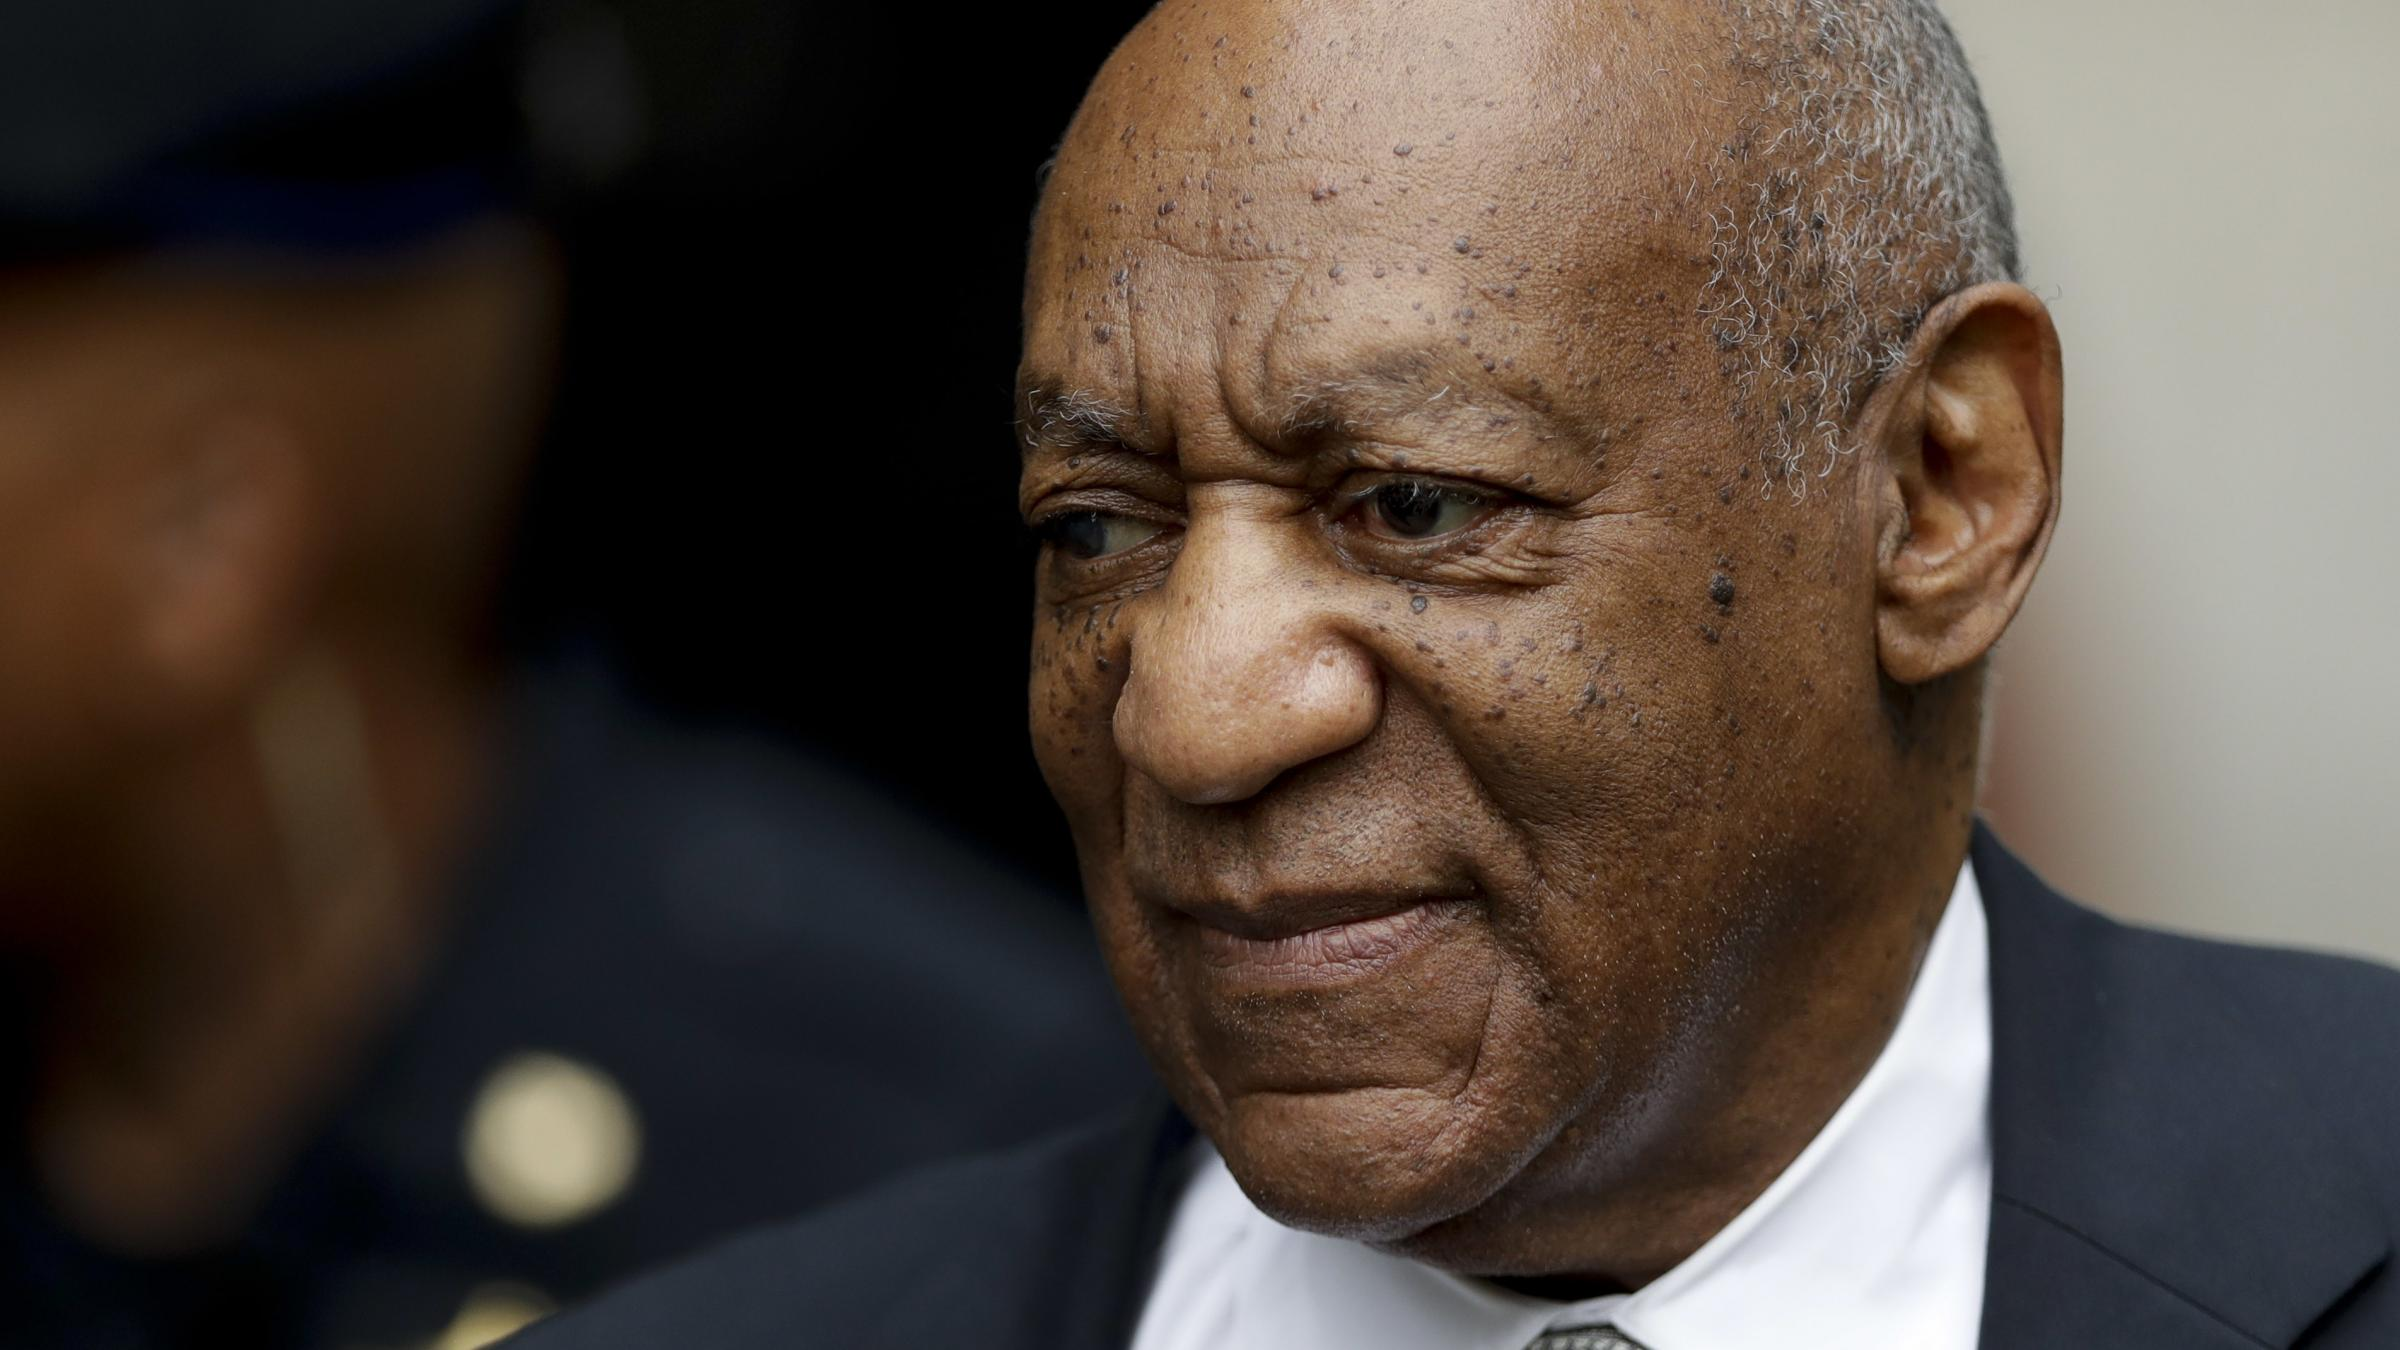 Jury to continue deliberations in Bill Cosby sexual assault trial